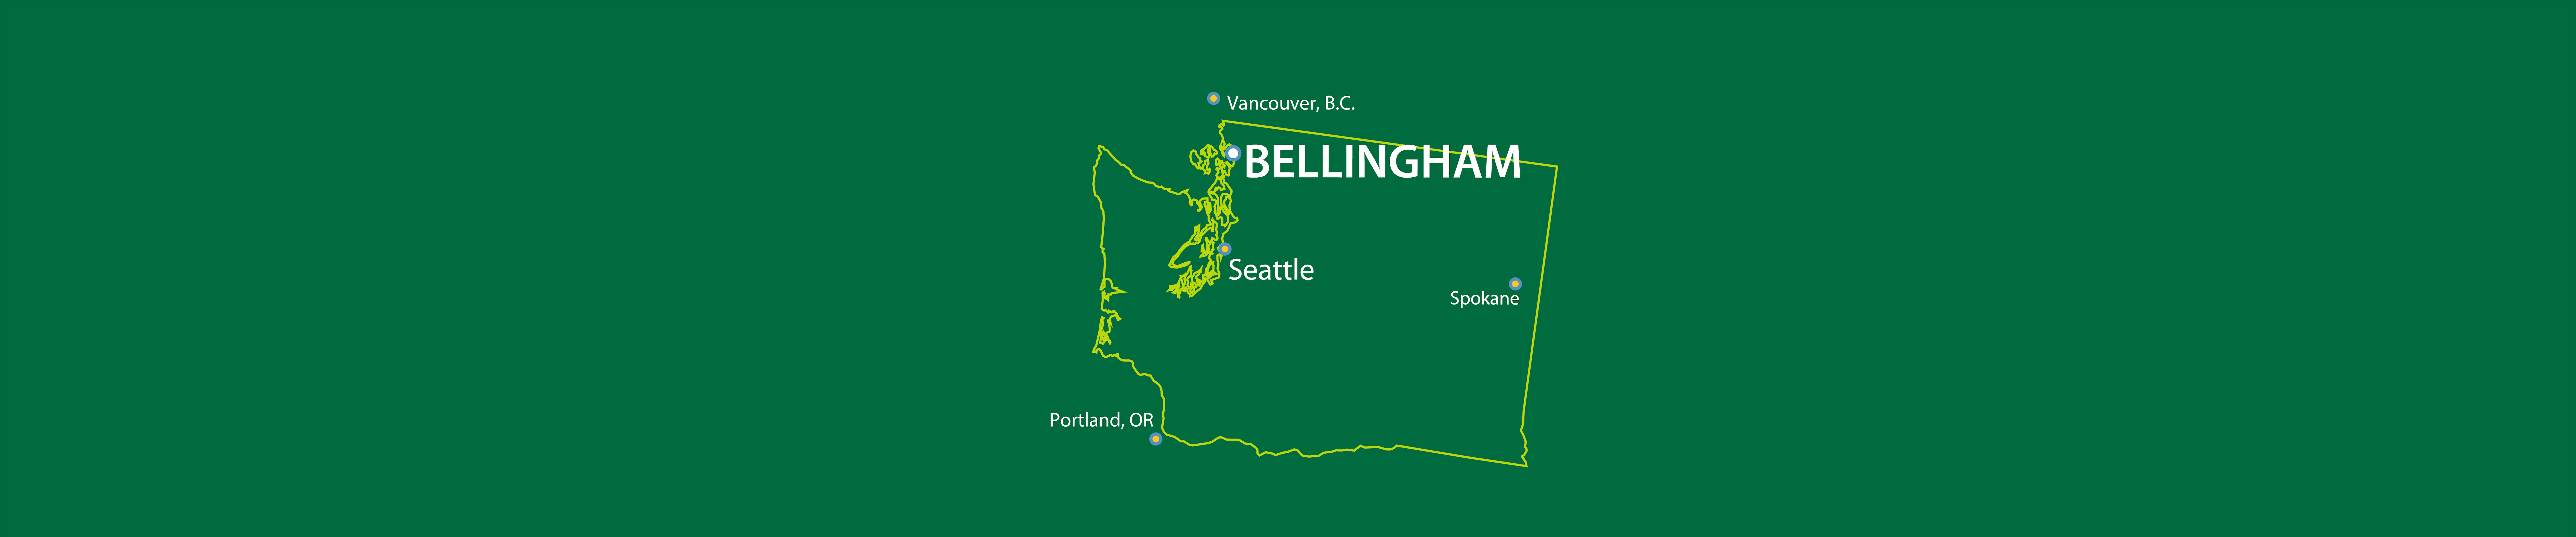 A map of Washington with Bellingham, Seattle, Vancouver BC and other major cities highlighted